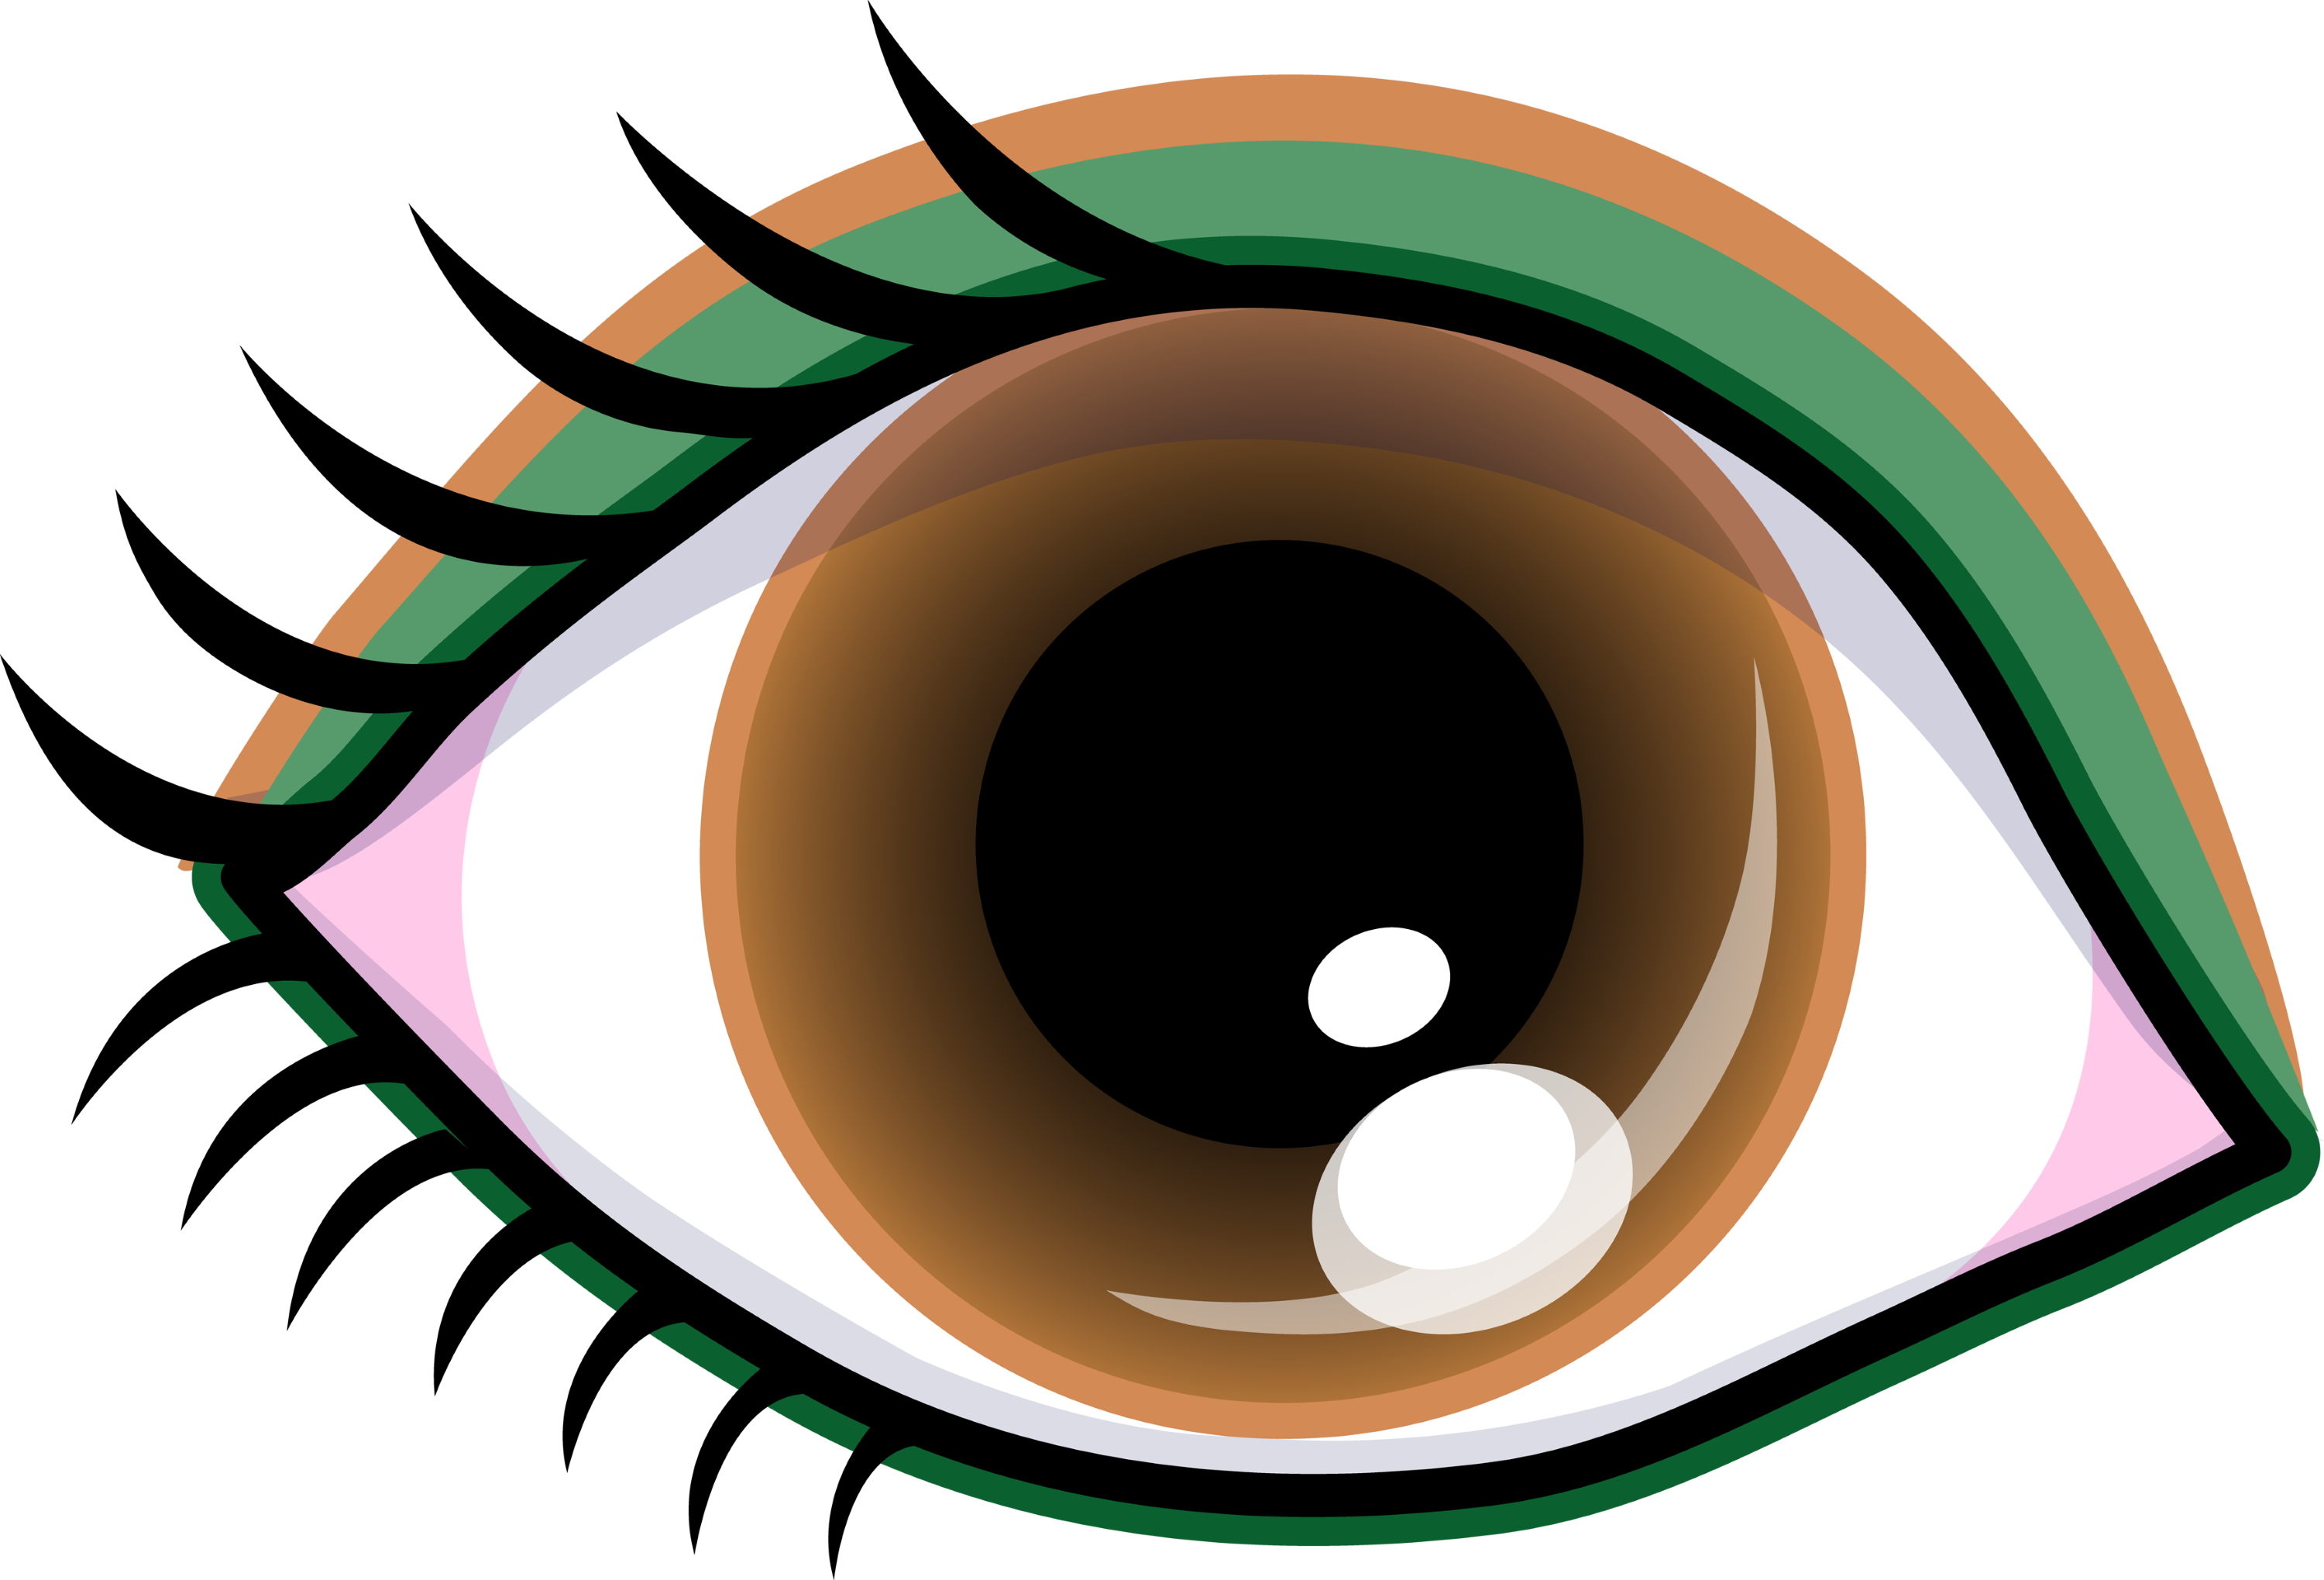 free clipart images eyes - photo #41